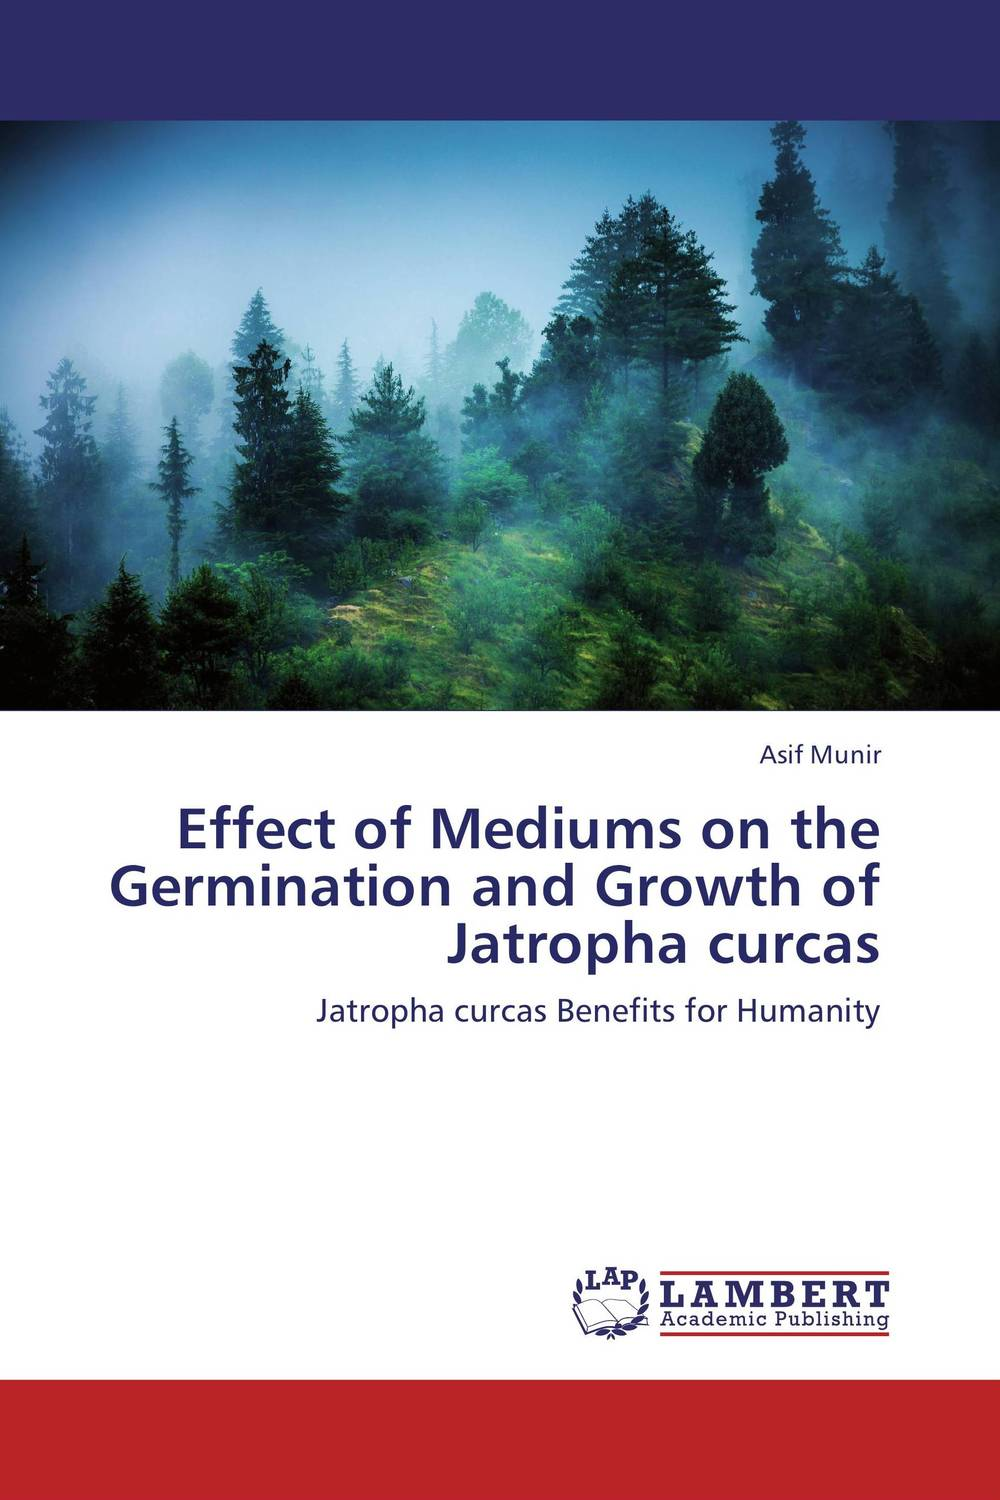 Effect of Mediums on the Germination and Growth of Jatropha curcas the electrical hazards on the germination of seeds